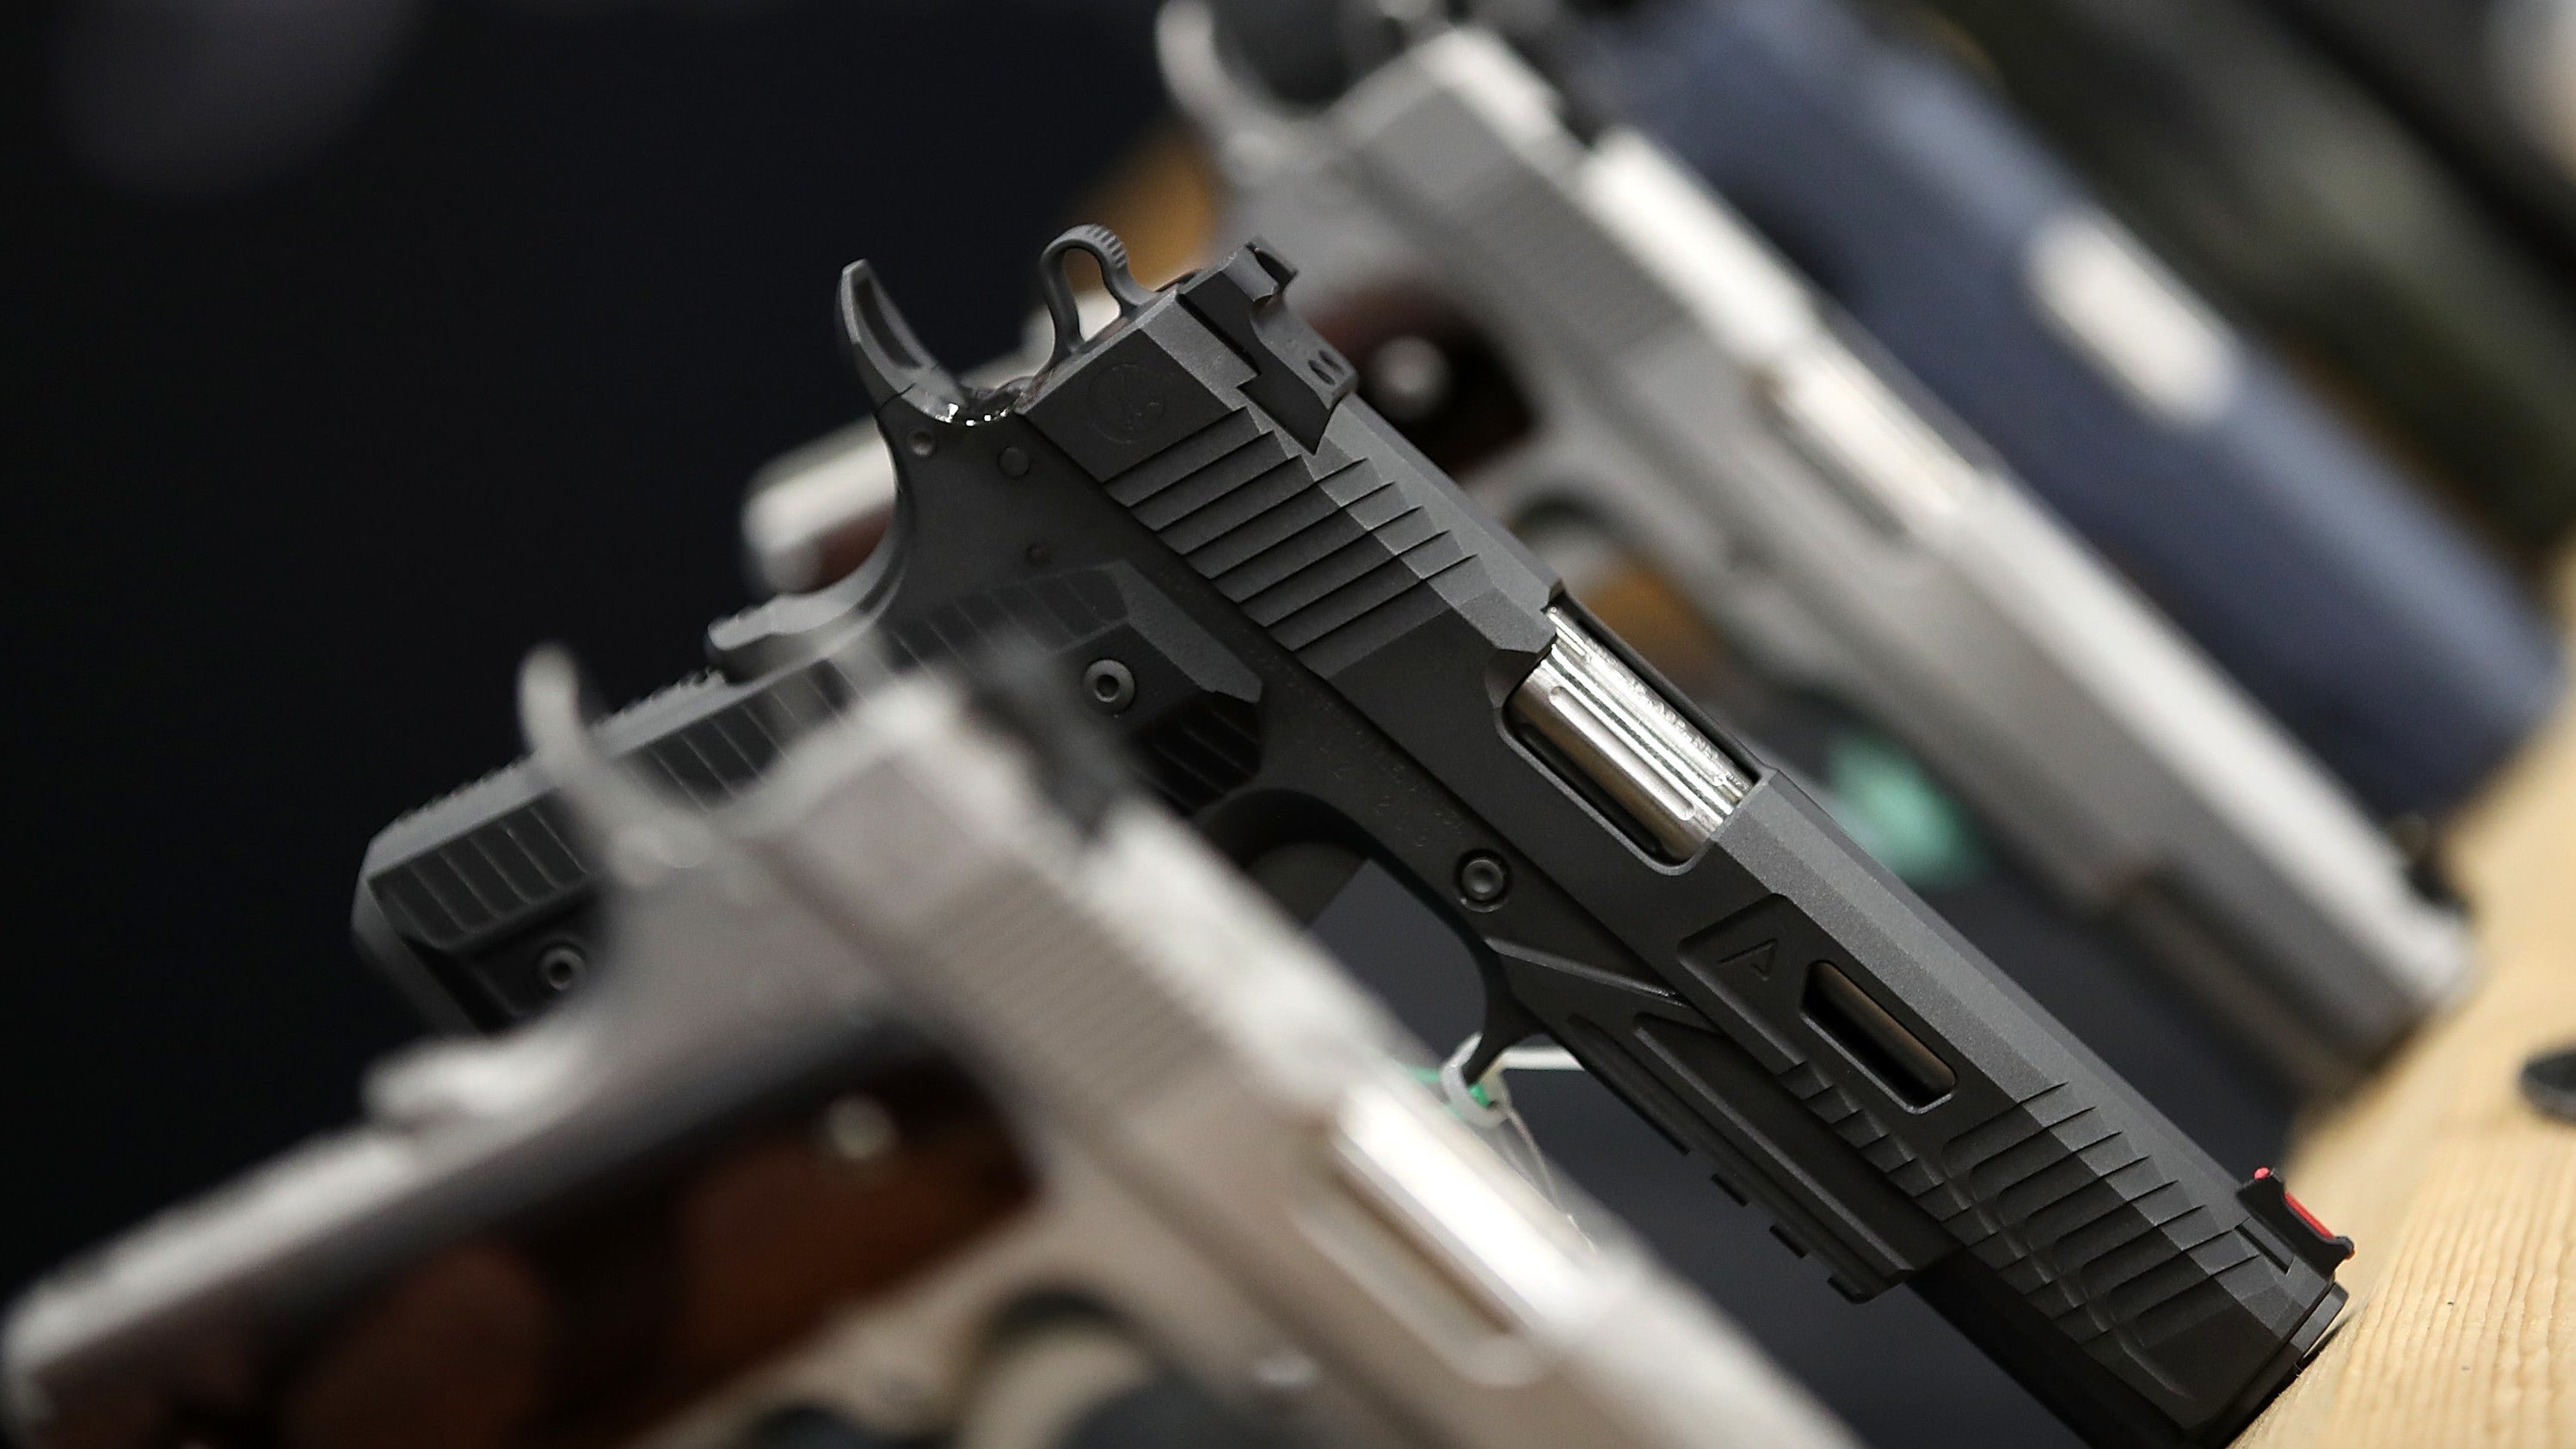 Survey Finds Nearly All Americans Want More Gun Control, Including Gun Owners